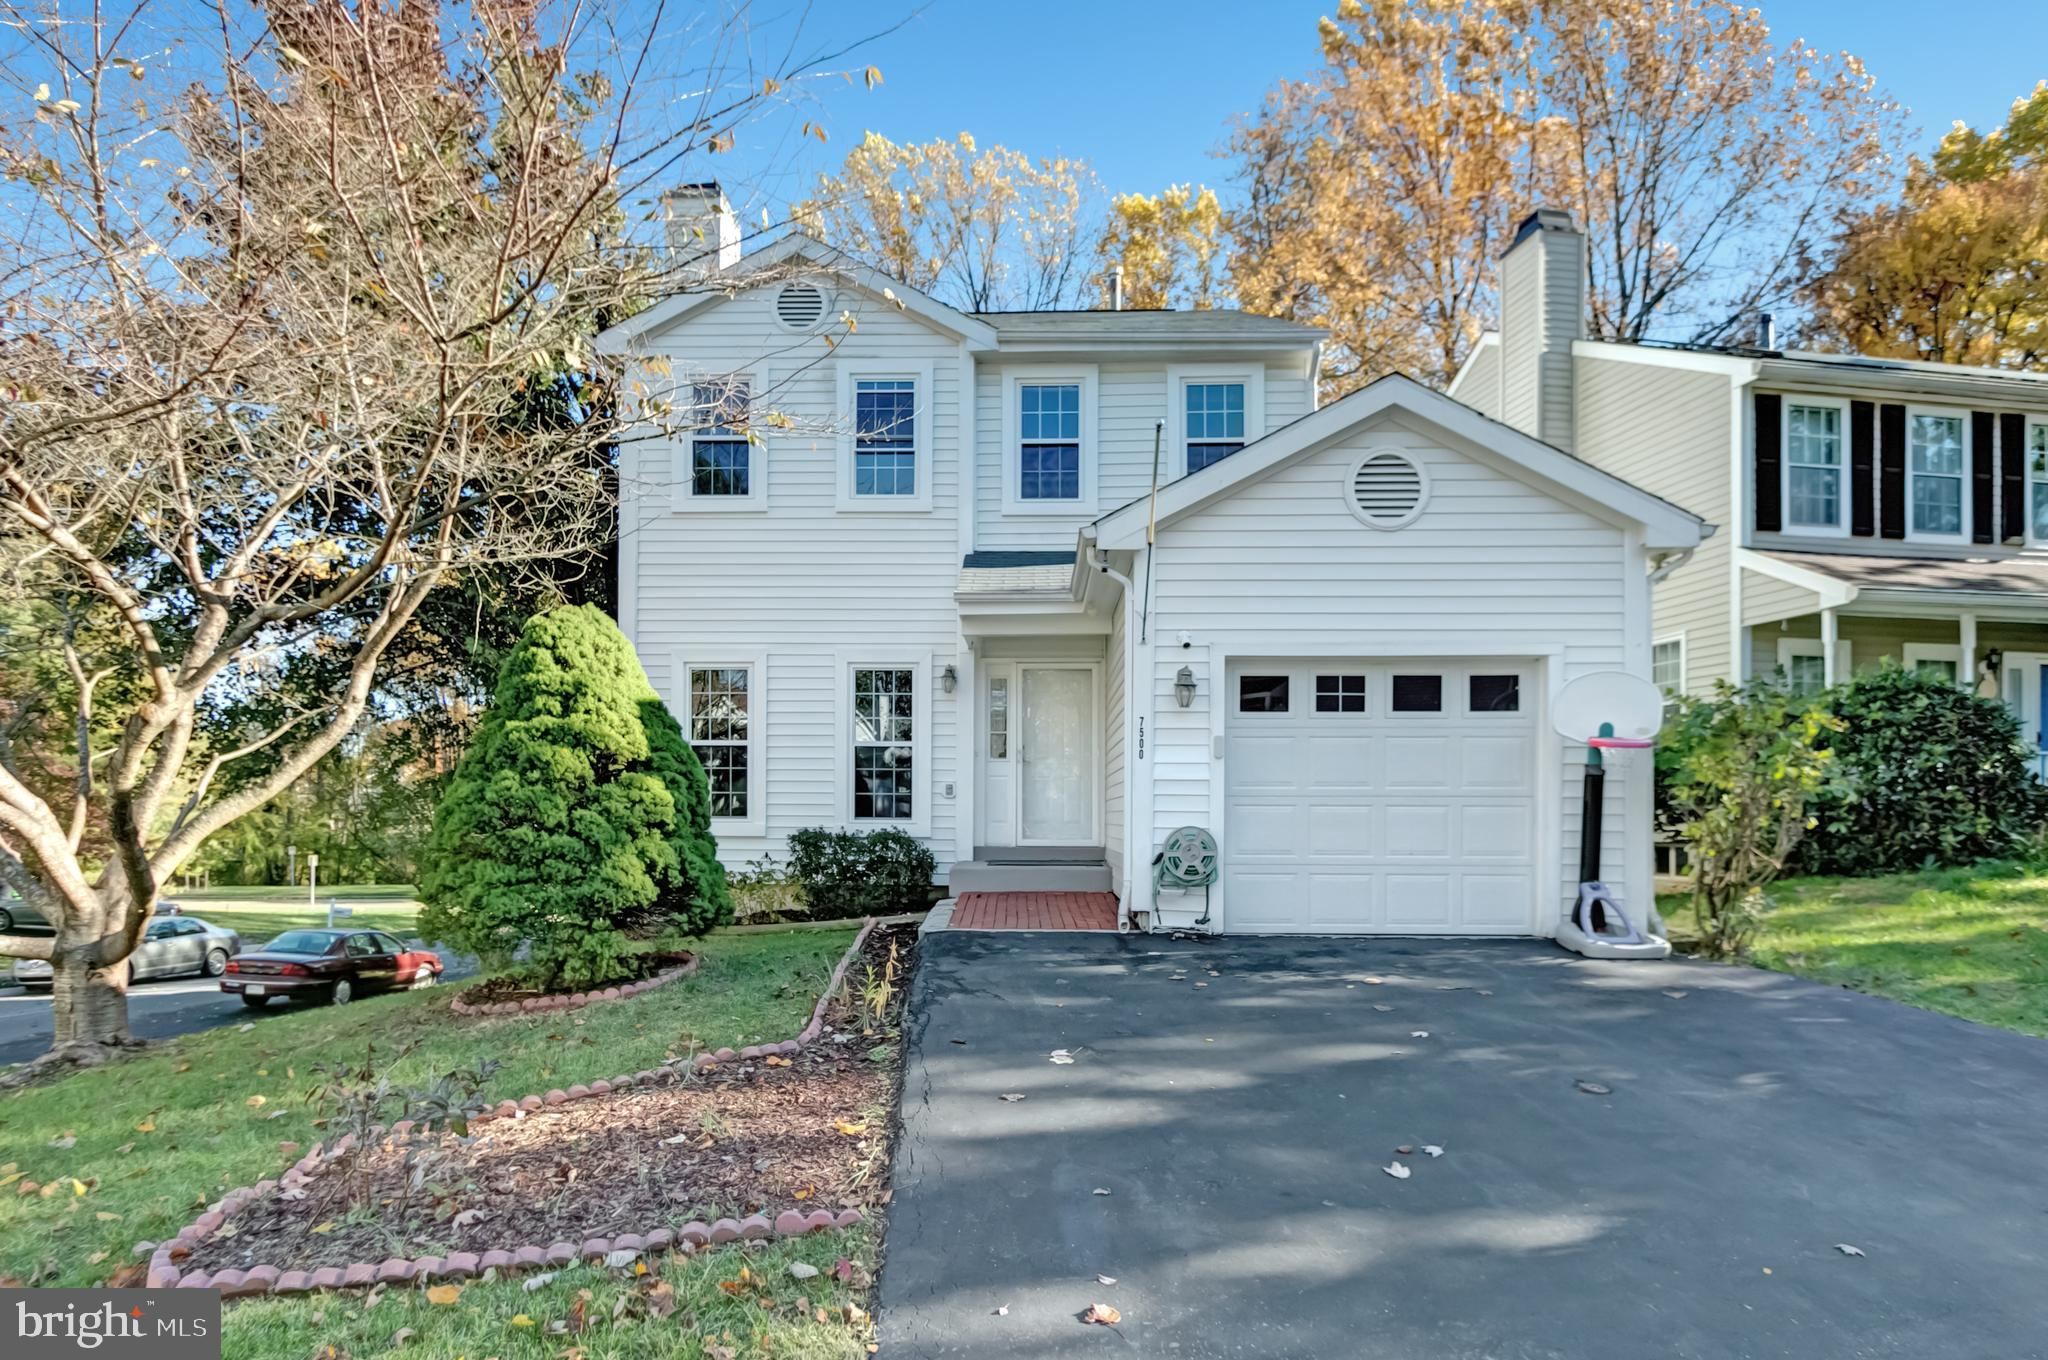 7500 MATTINGLY LANE, GAITHERSBURG, MD 20879